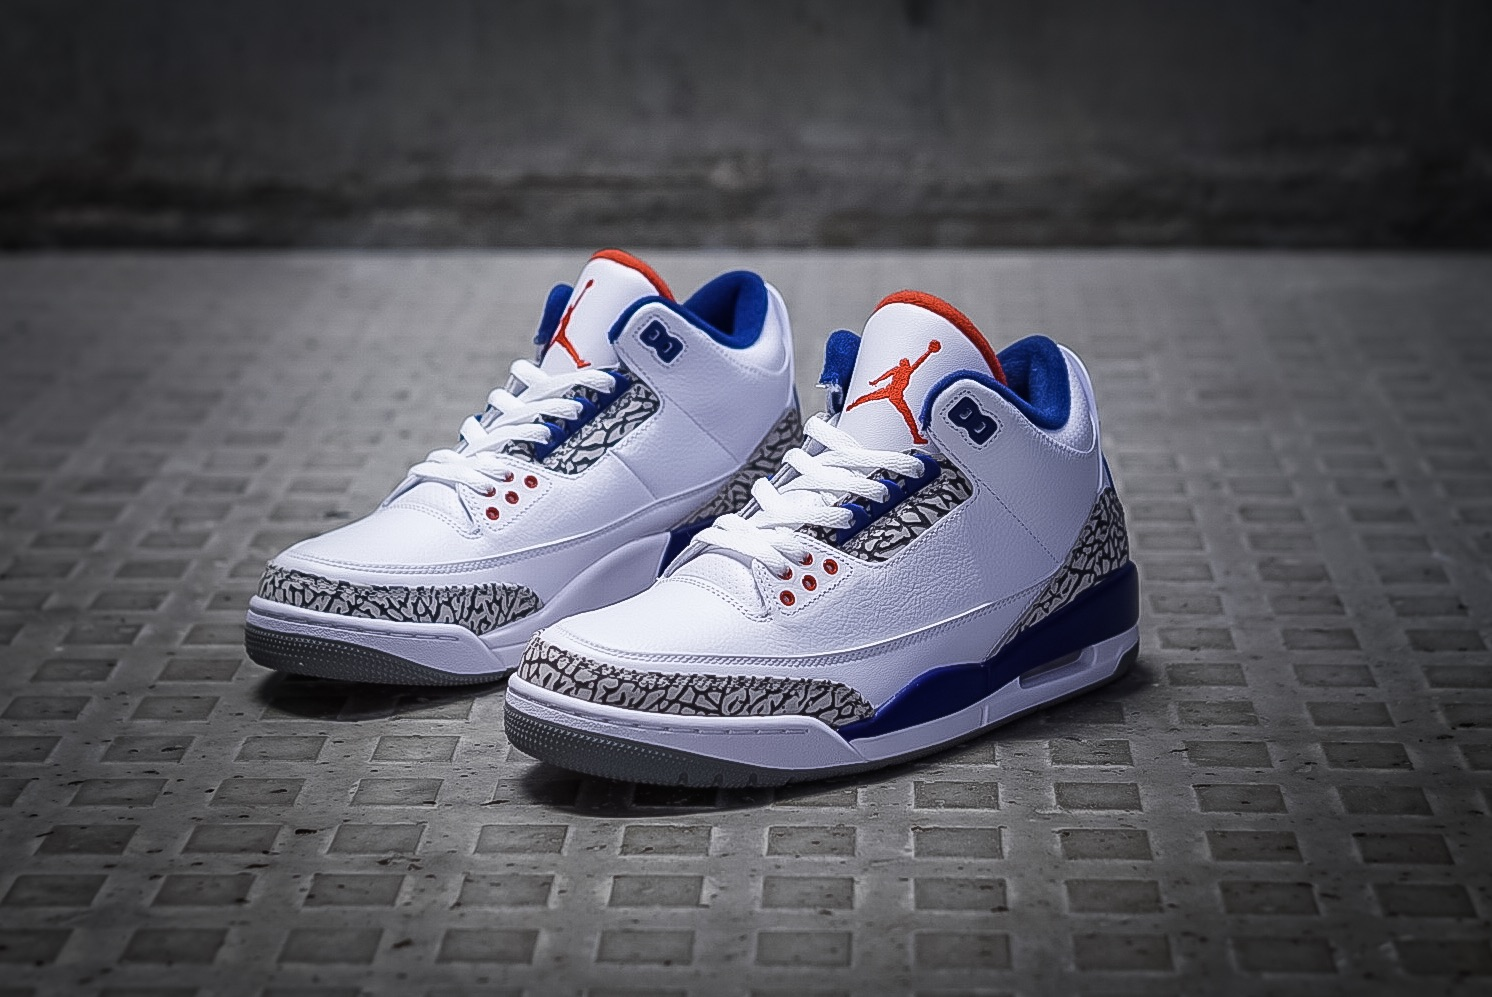 957af6f42407 true blue Archives - Air 23 - Air Jordan Release Dates